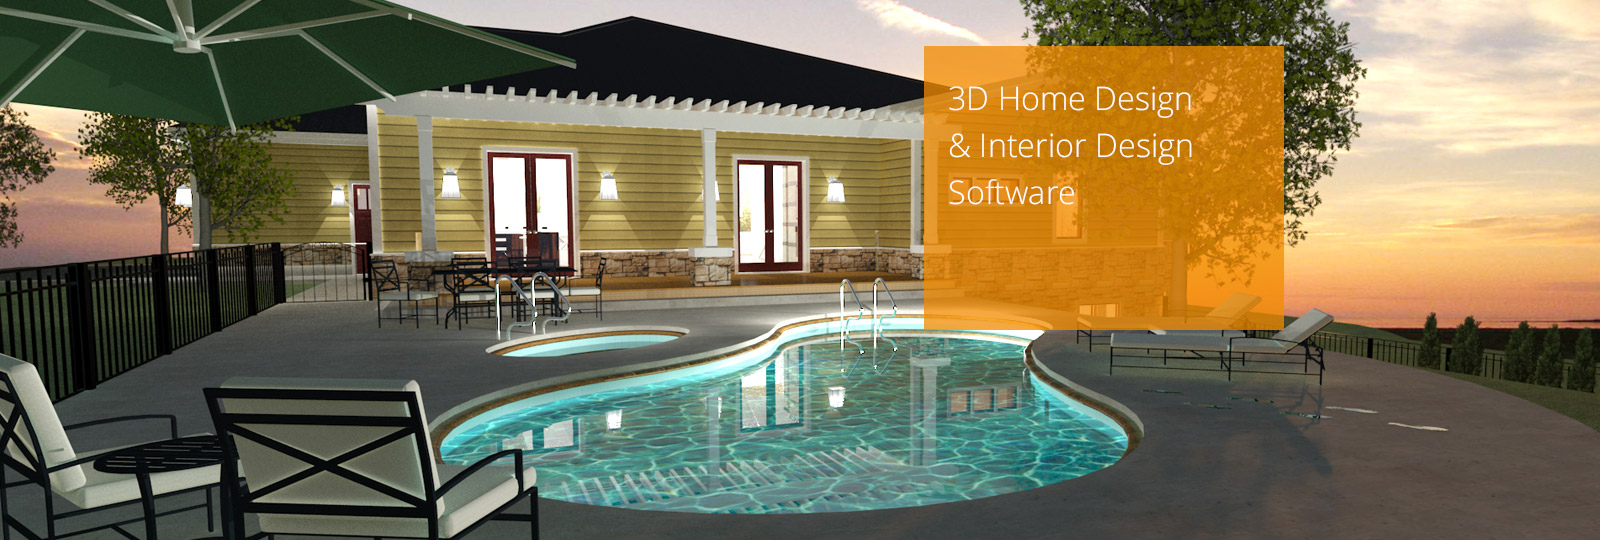 Amazing Free Online D House Design Games With D Interior Design Games.